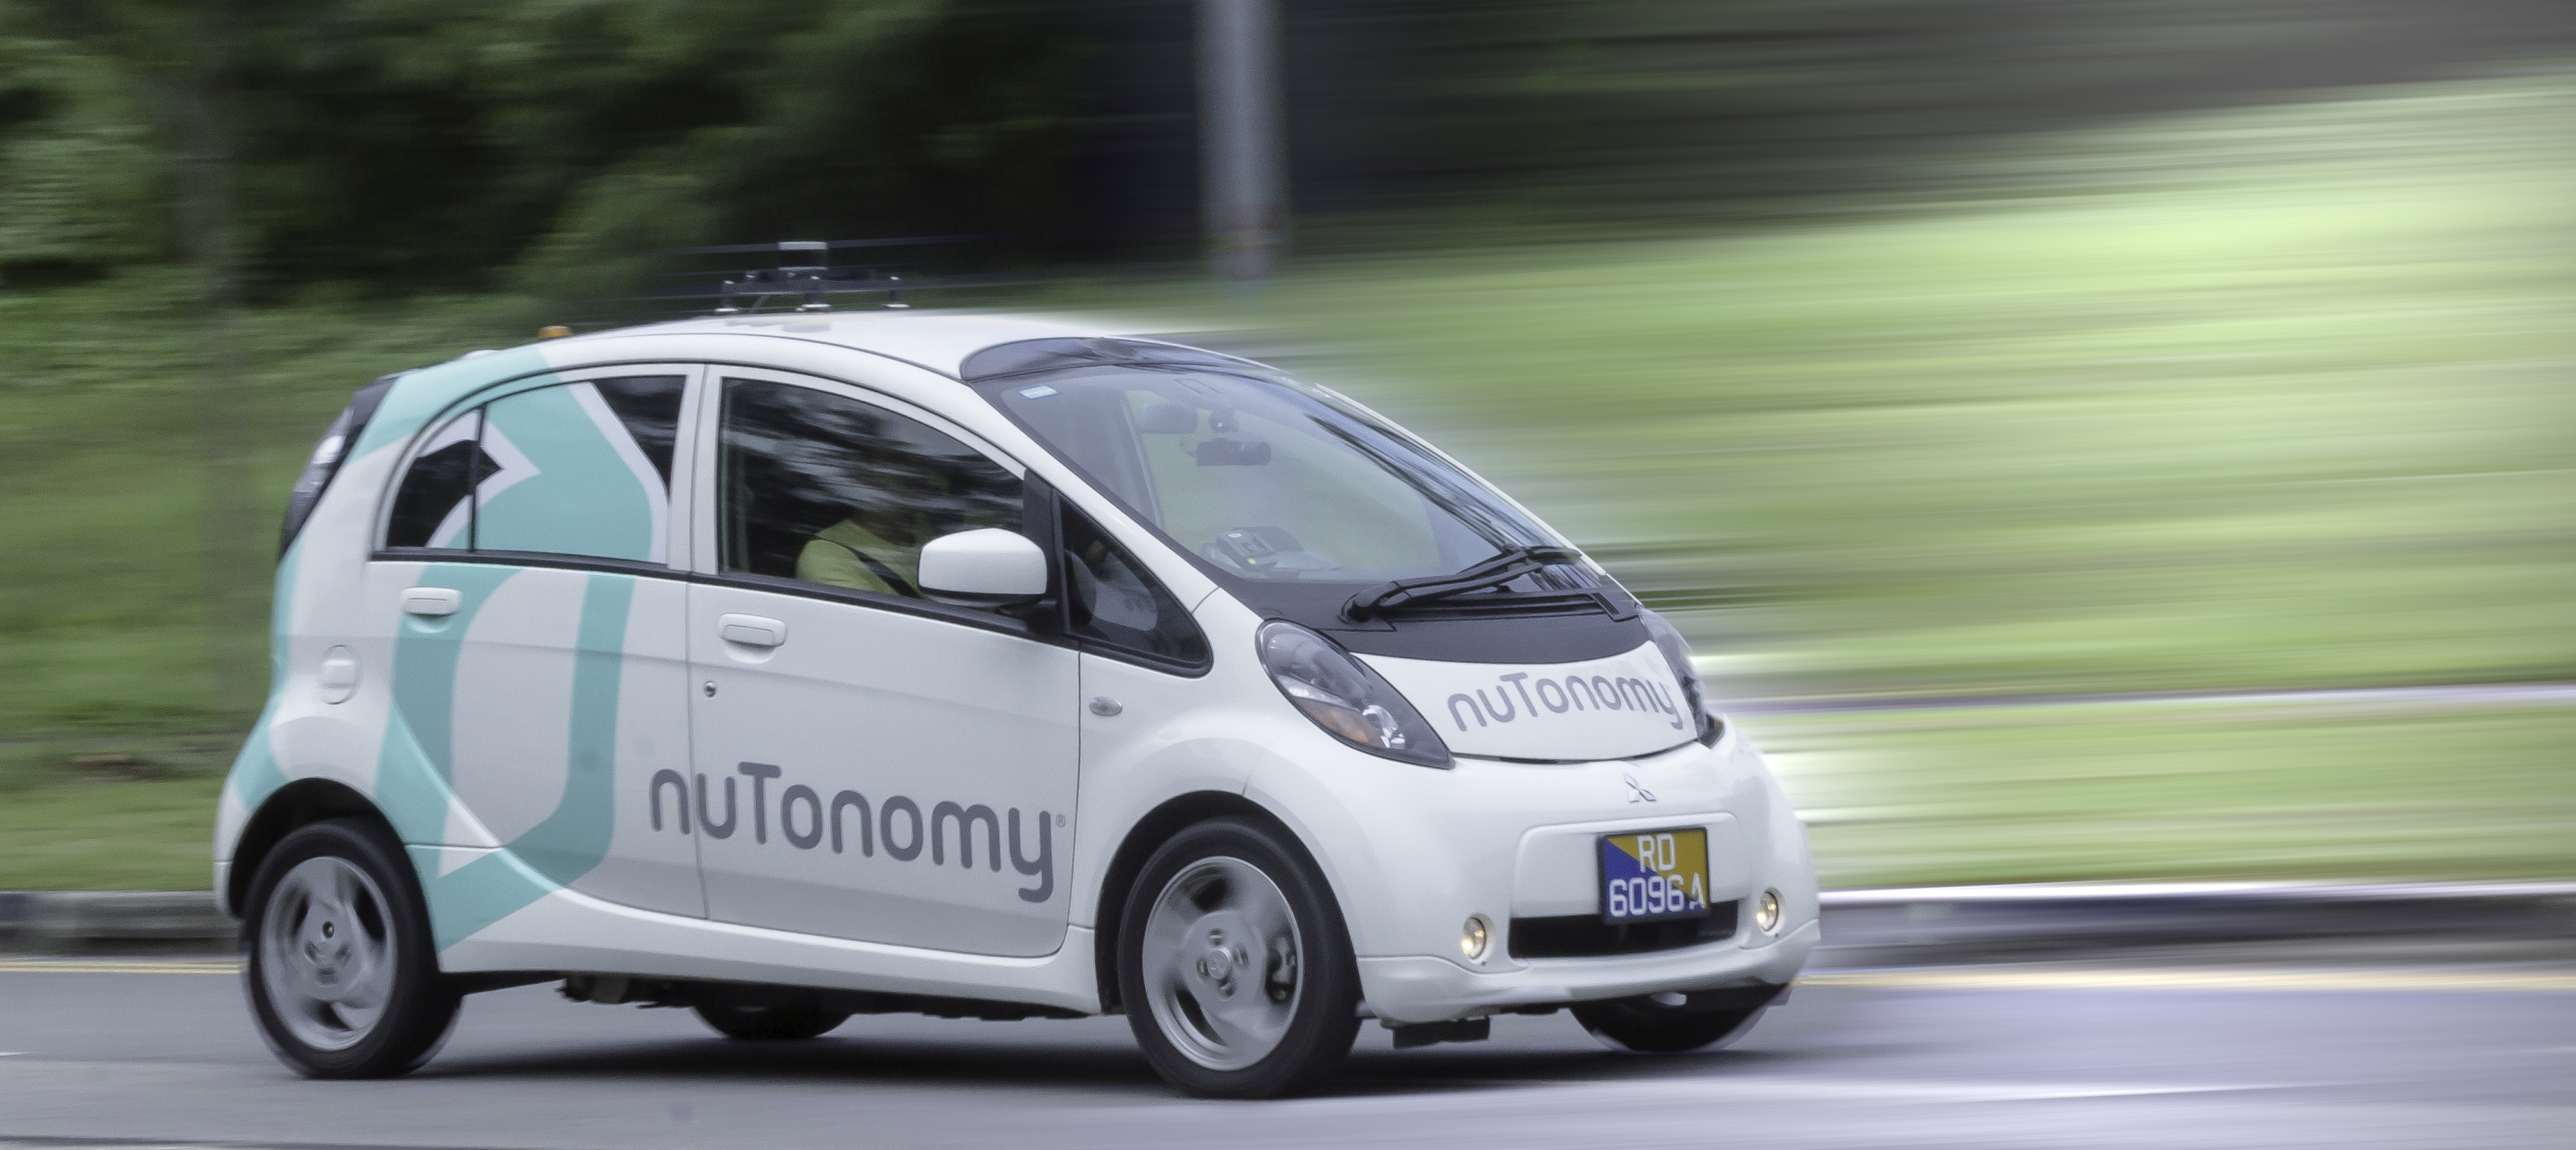 NuTonomy, a self-driving car startup, has raised $16 million in a Series A funding round.